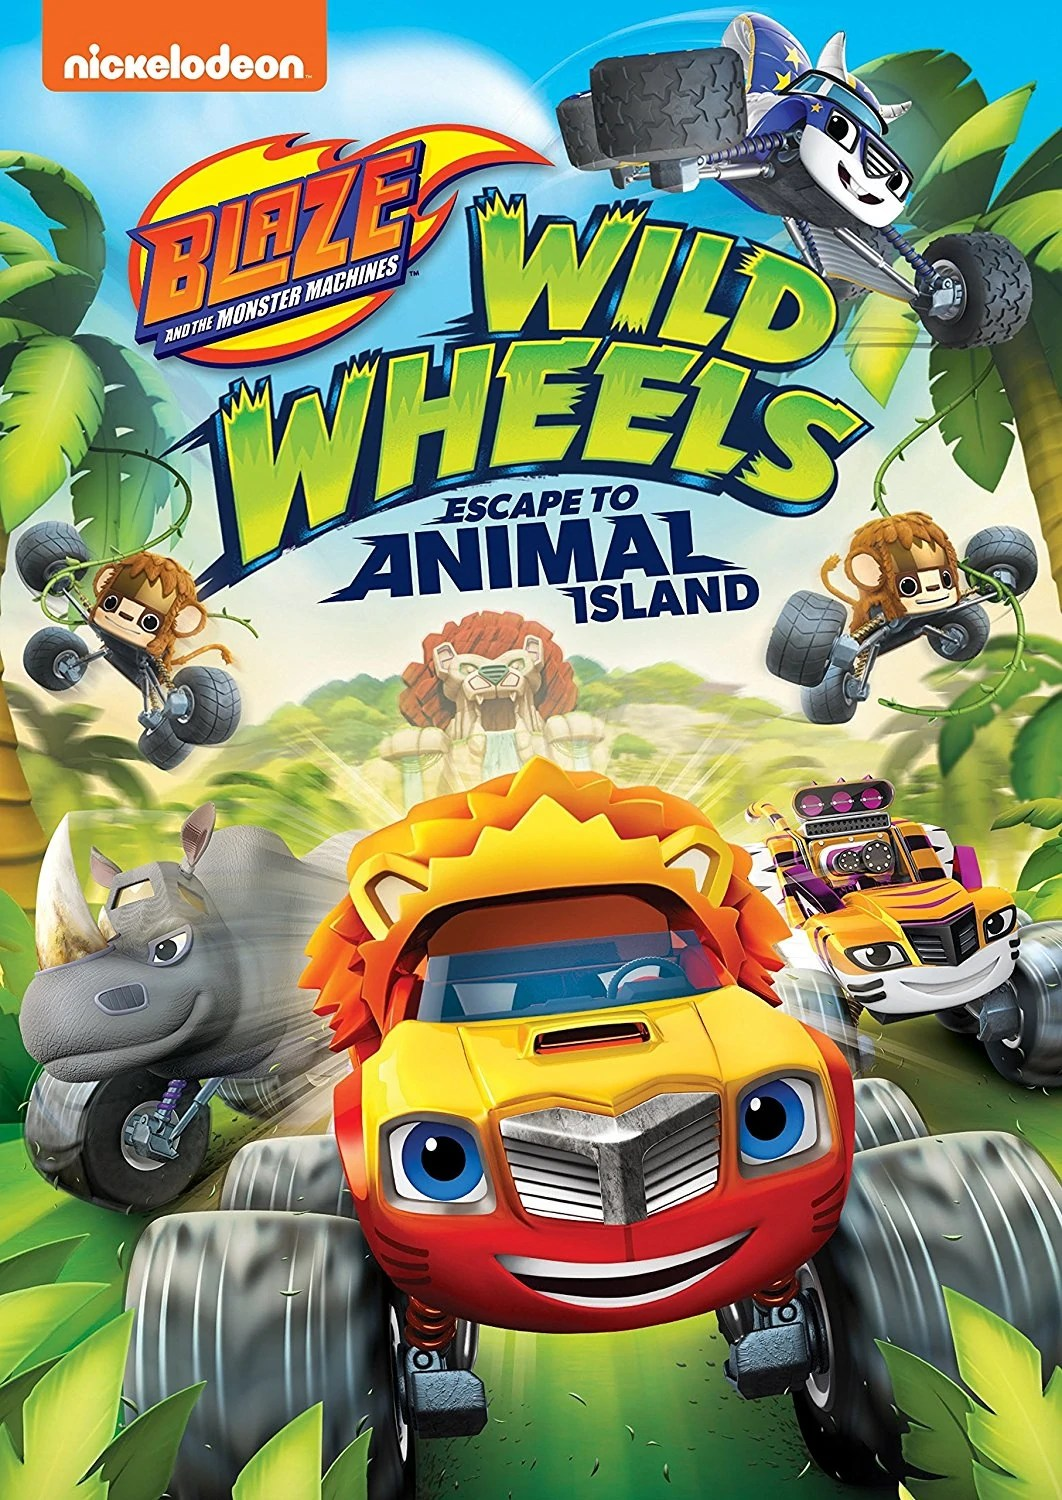 Blaze And The Monster Machines The Big Ant Venture : blaze, monster, machines, venture, Wheels:, Escape, Animal, Island, Blaze, Monster, Machines, Fandom